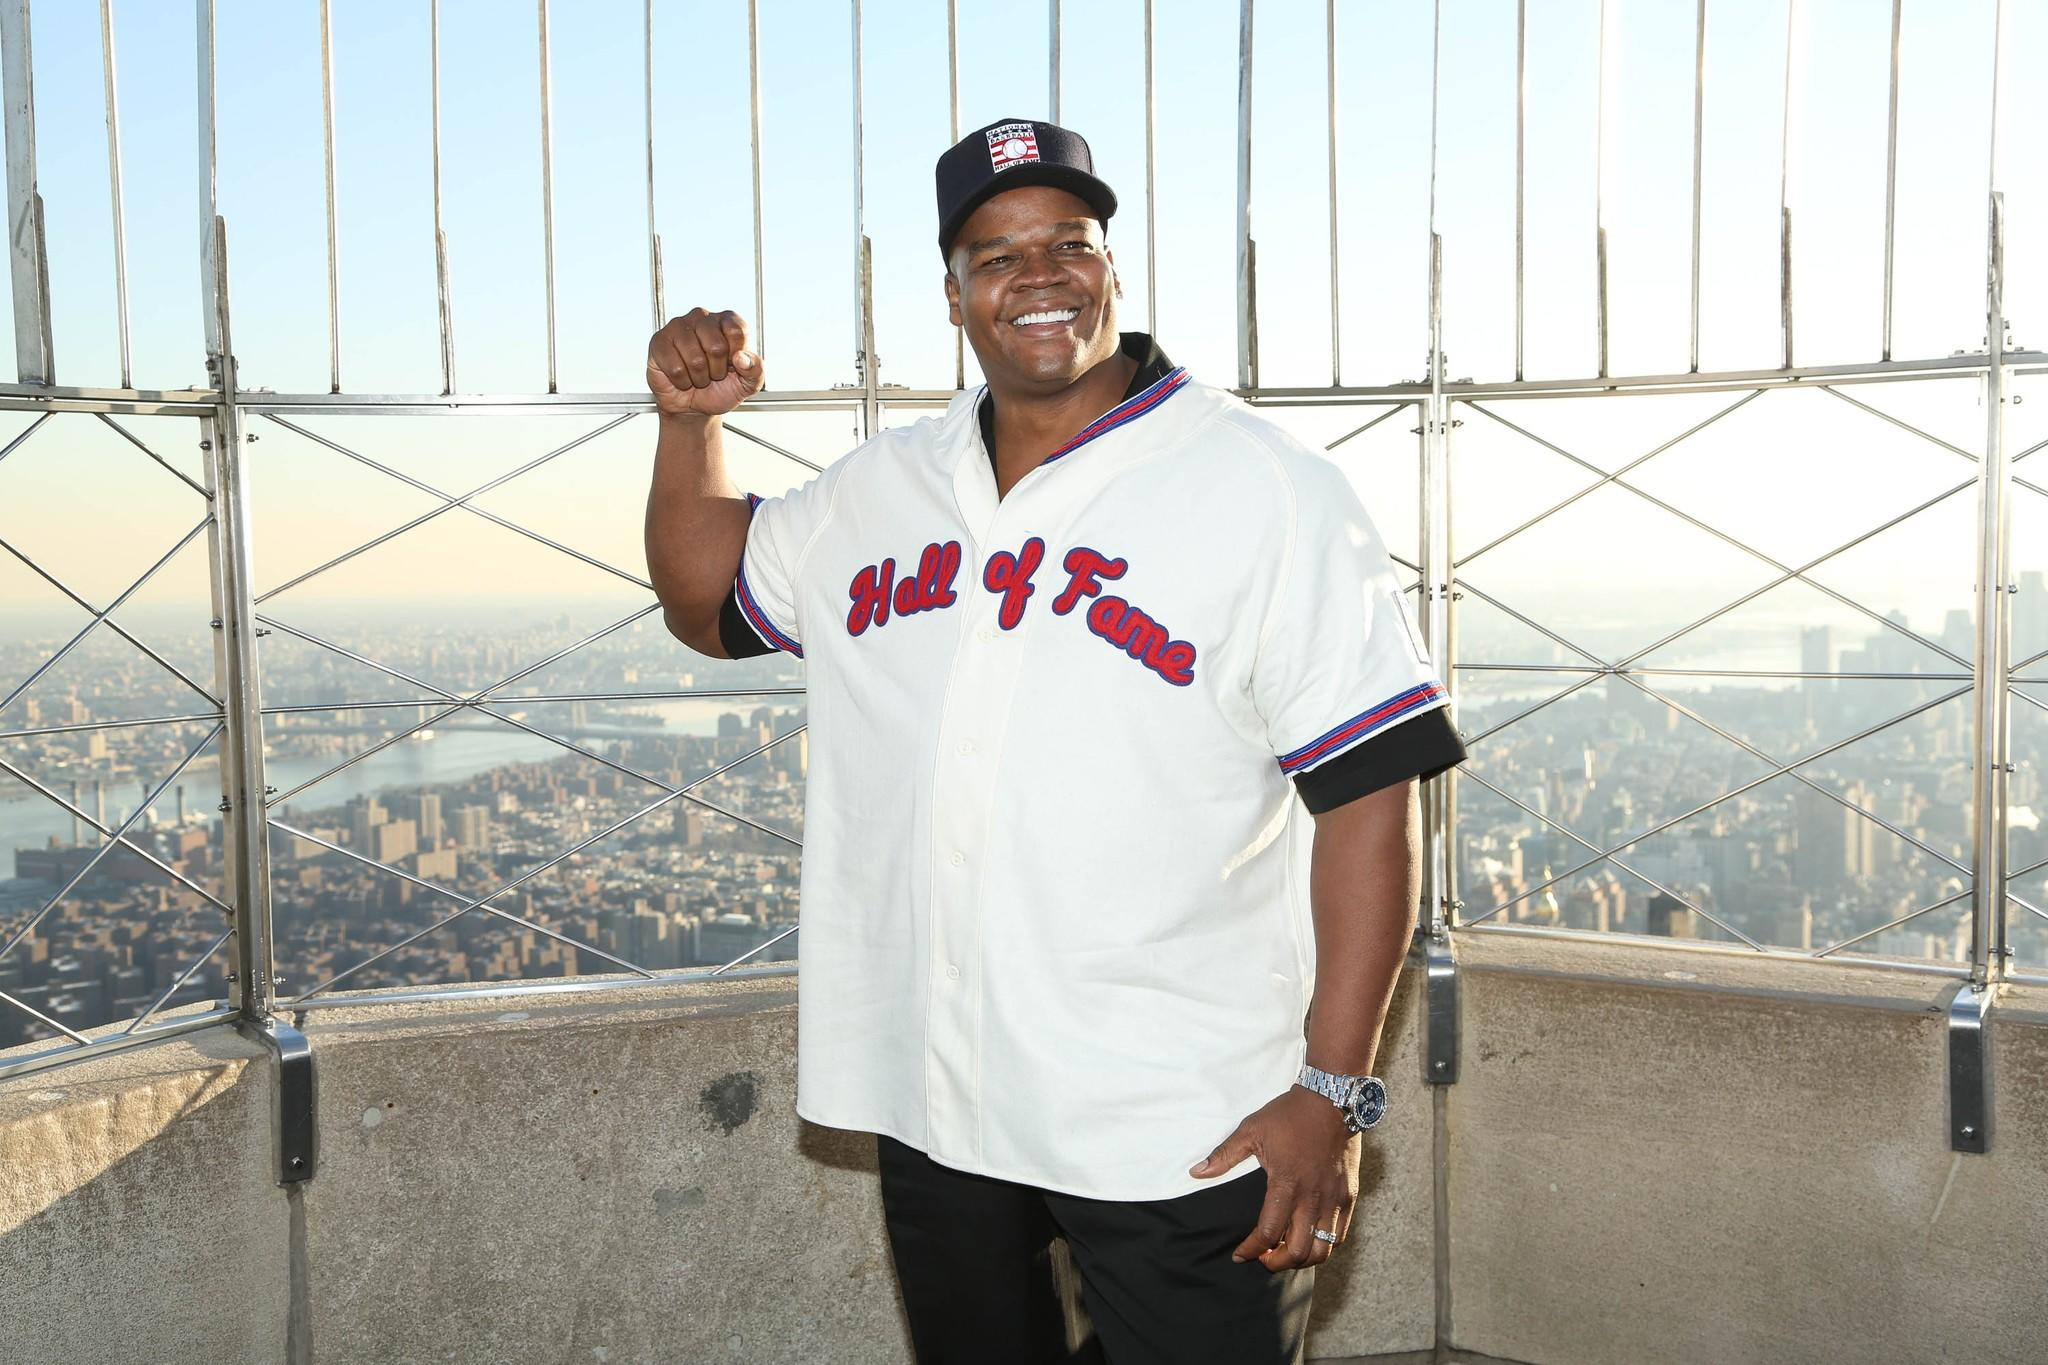 NEW YORK, NY - JANUARY 09: 2014 Baseball Hall of Fame Electee Frank Thomas visits at The Empire State Building on January 9, 2014 in New York City. (Photo by Rob Kim/Getty Images) ORG XMIT: 461743759